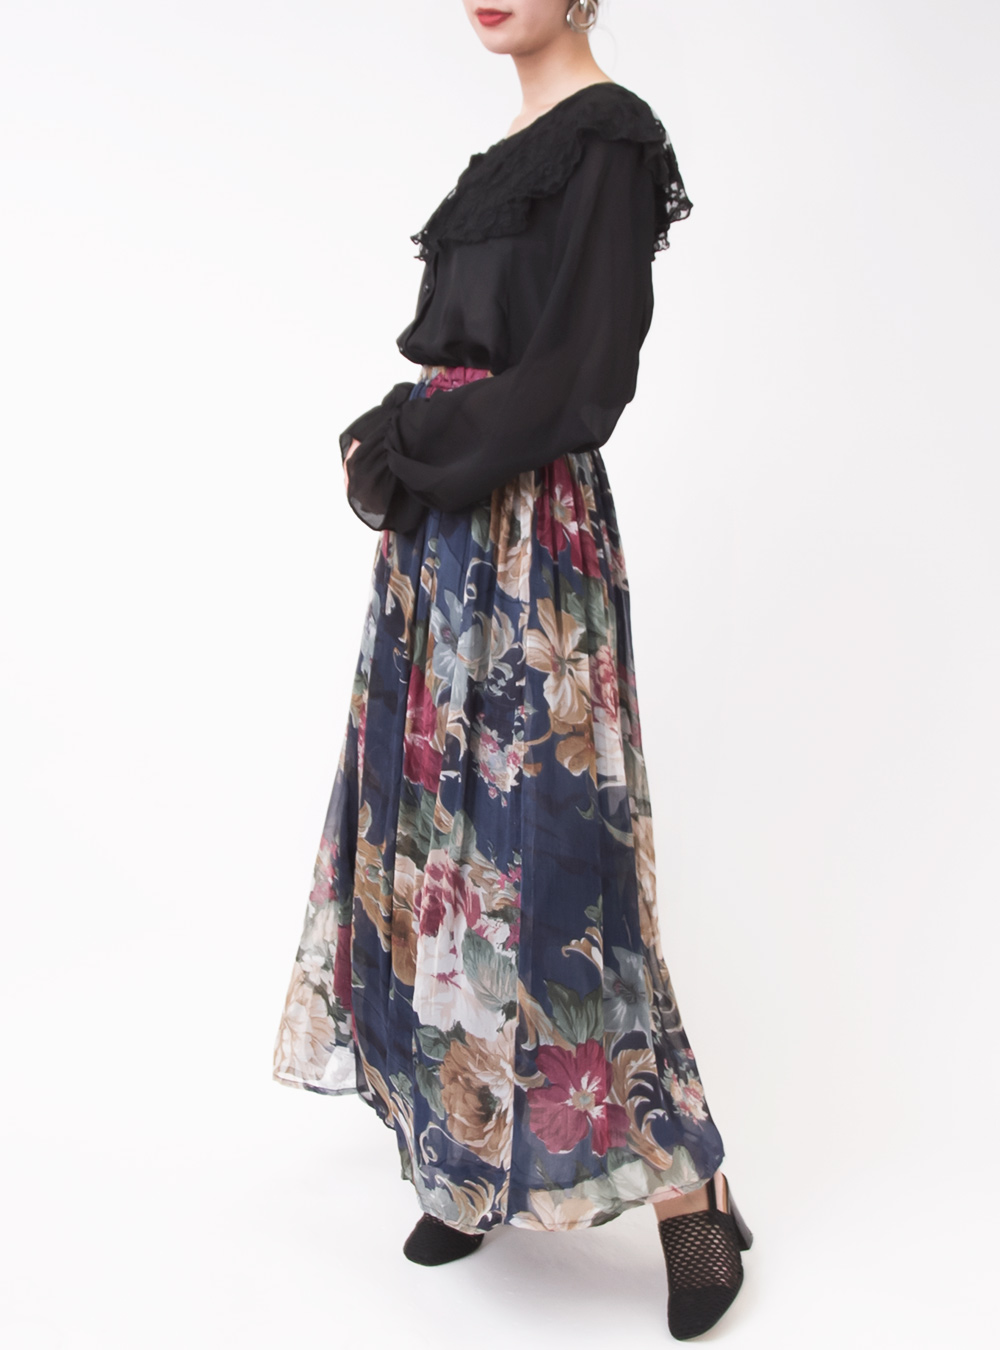 Flower Textile Gather Skirt